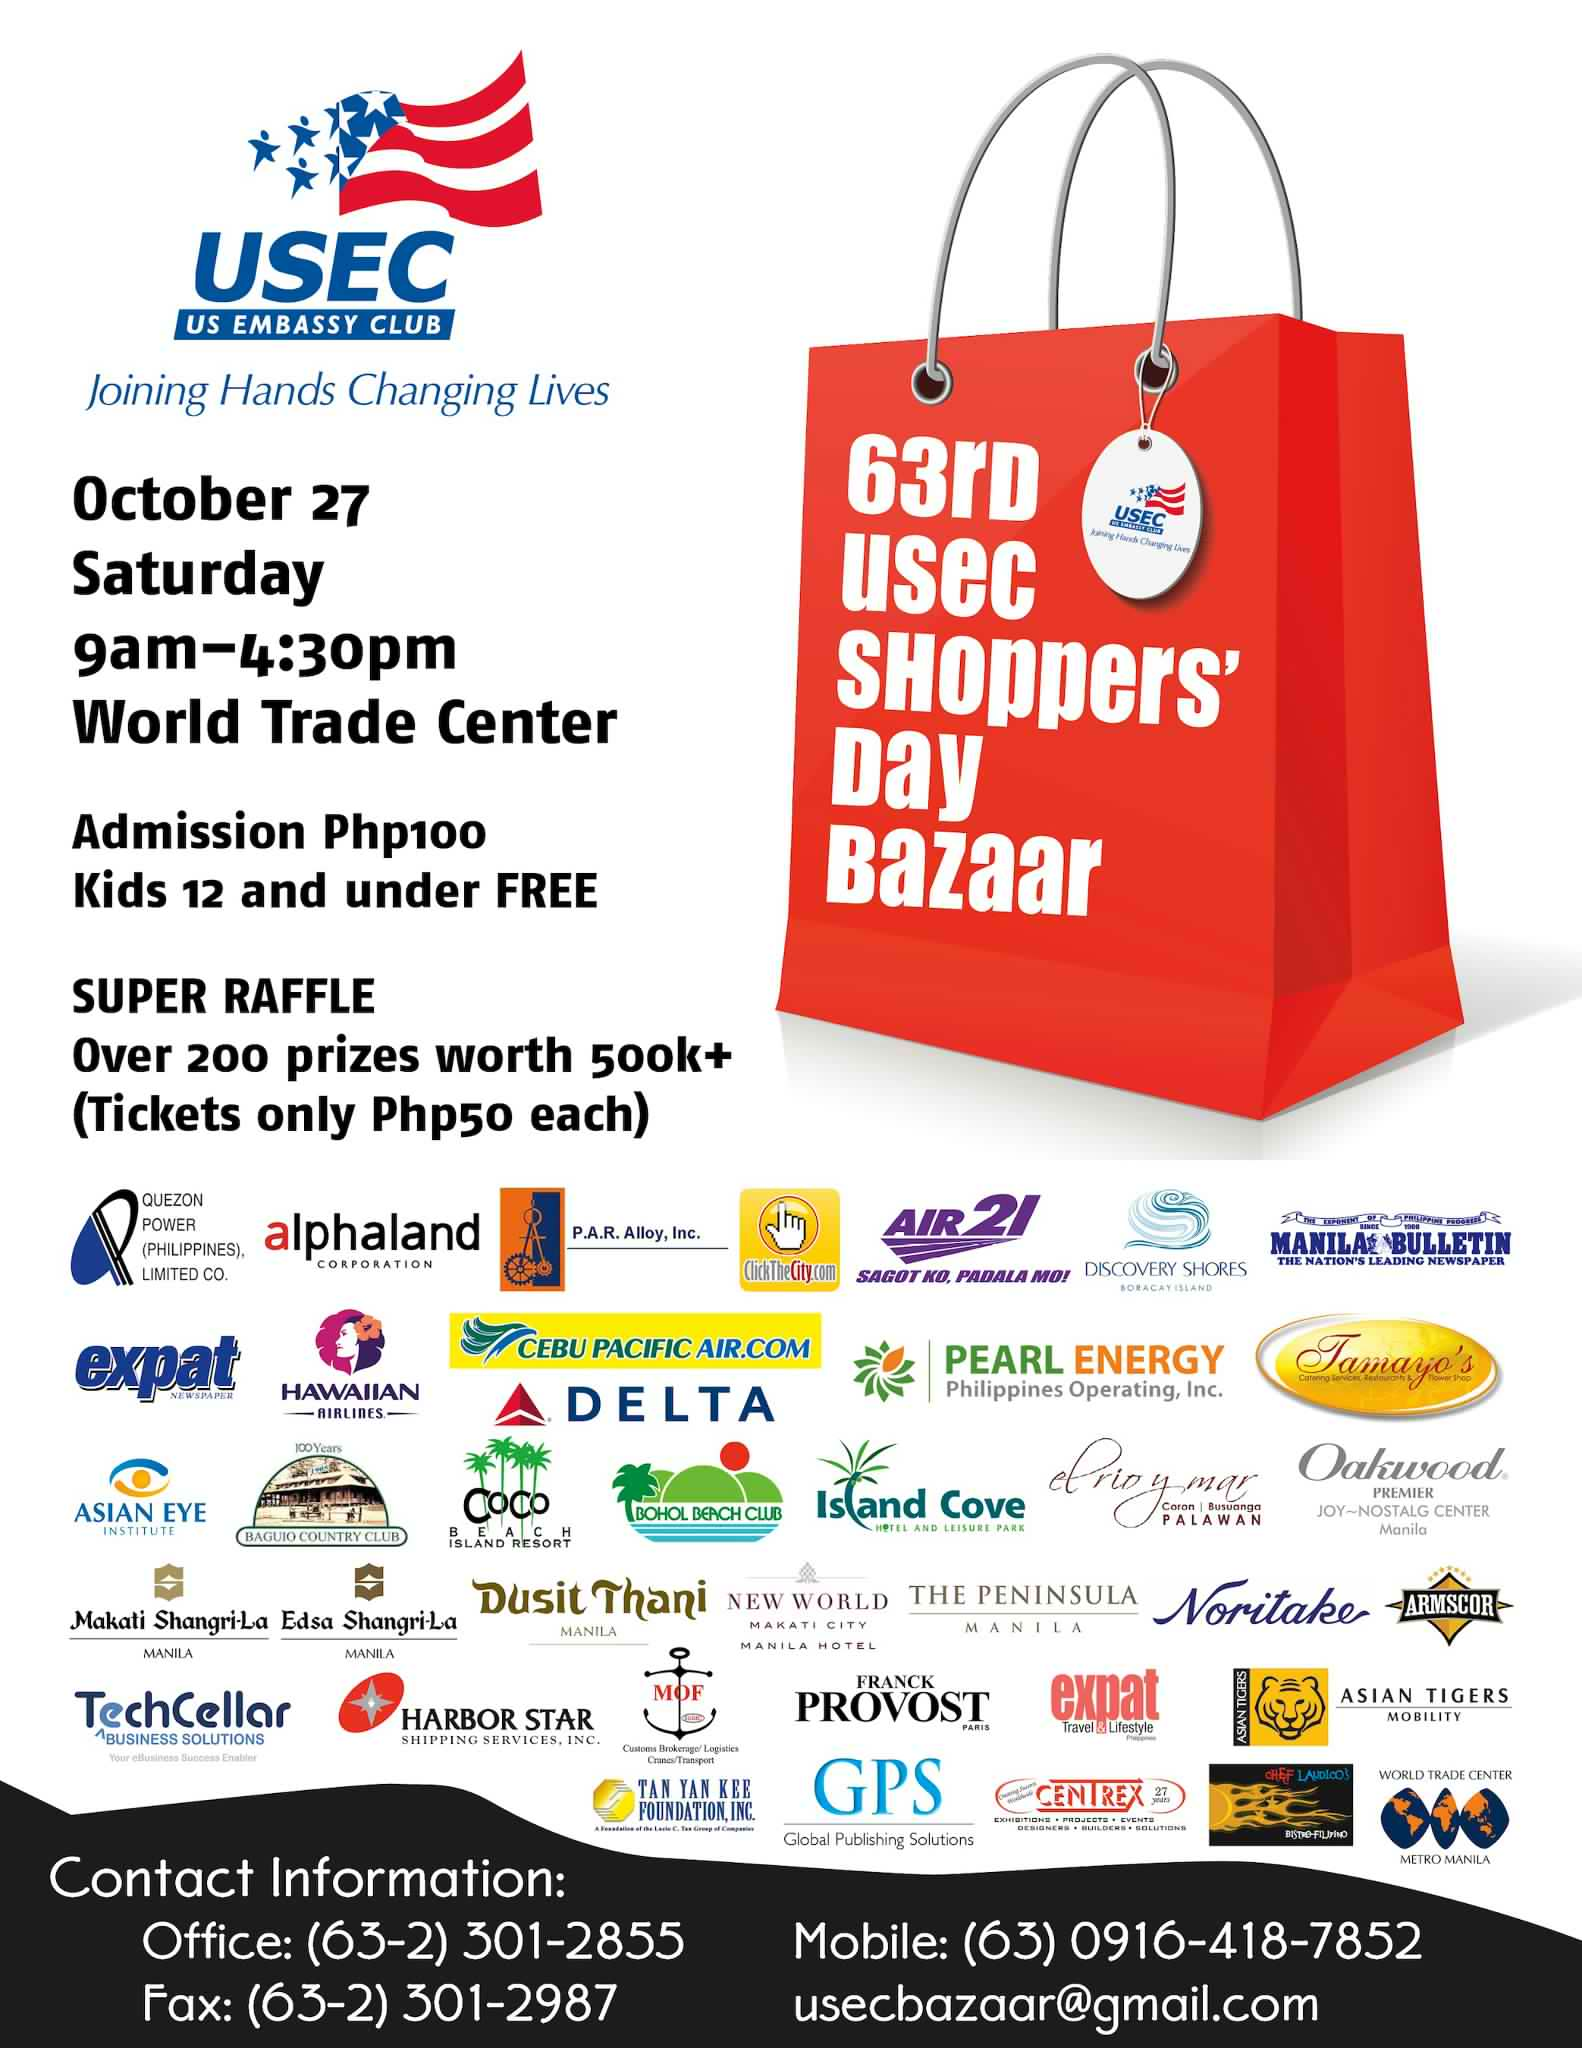 USEC Shoppers Day Bazaar @ World Trade Center October 2012